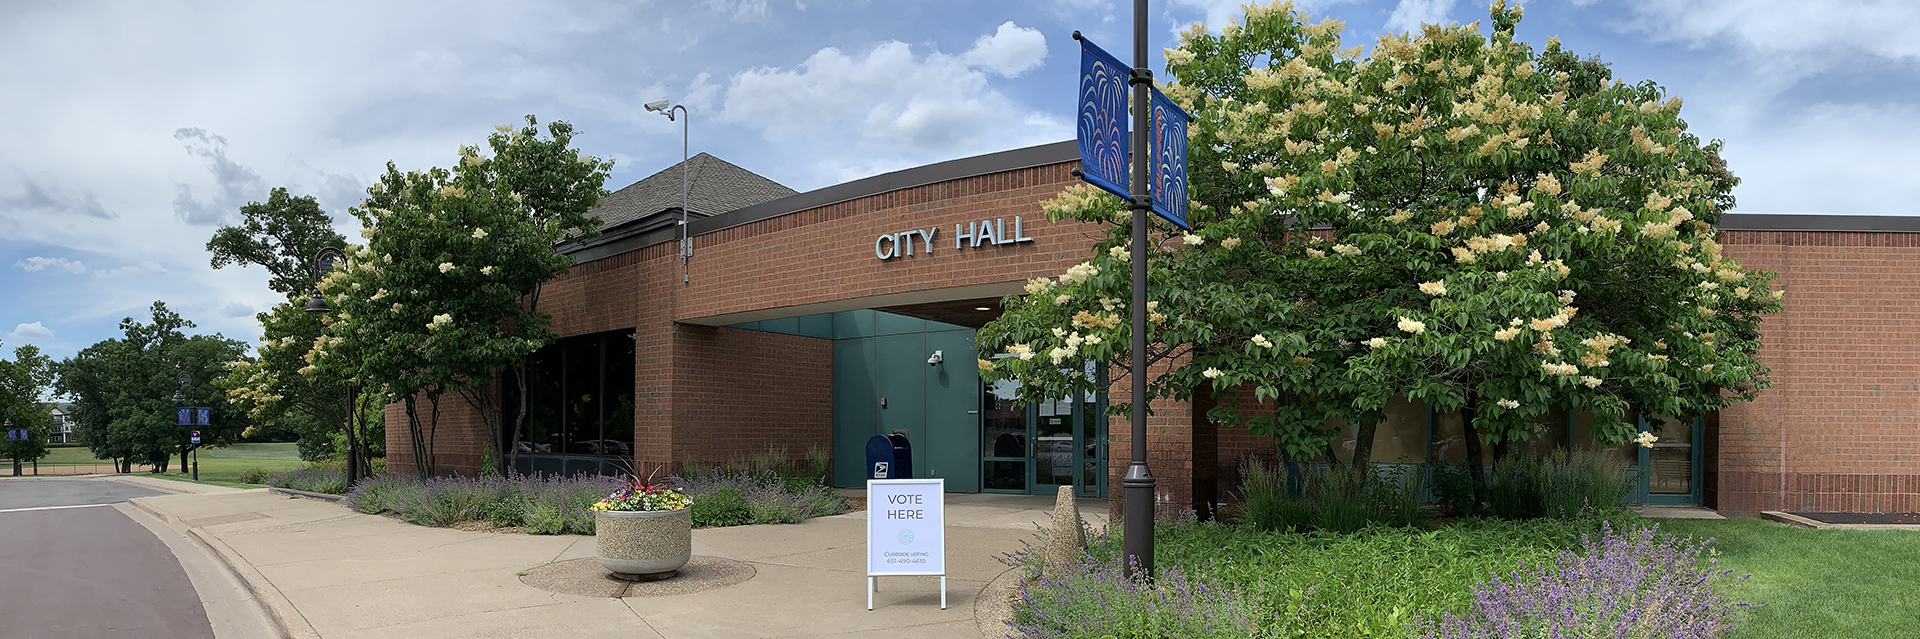 City Hall outdoor entrance with a